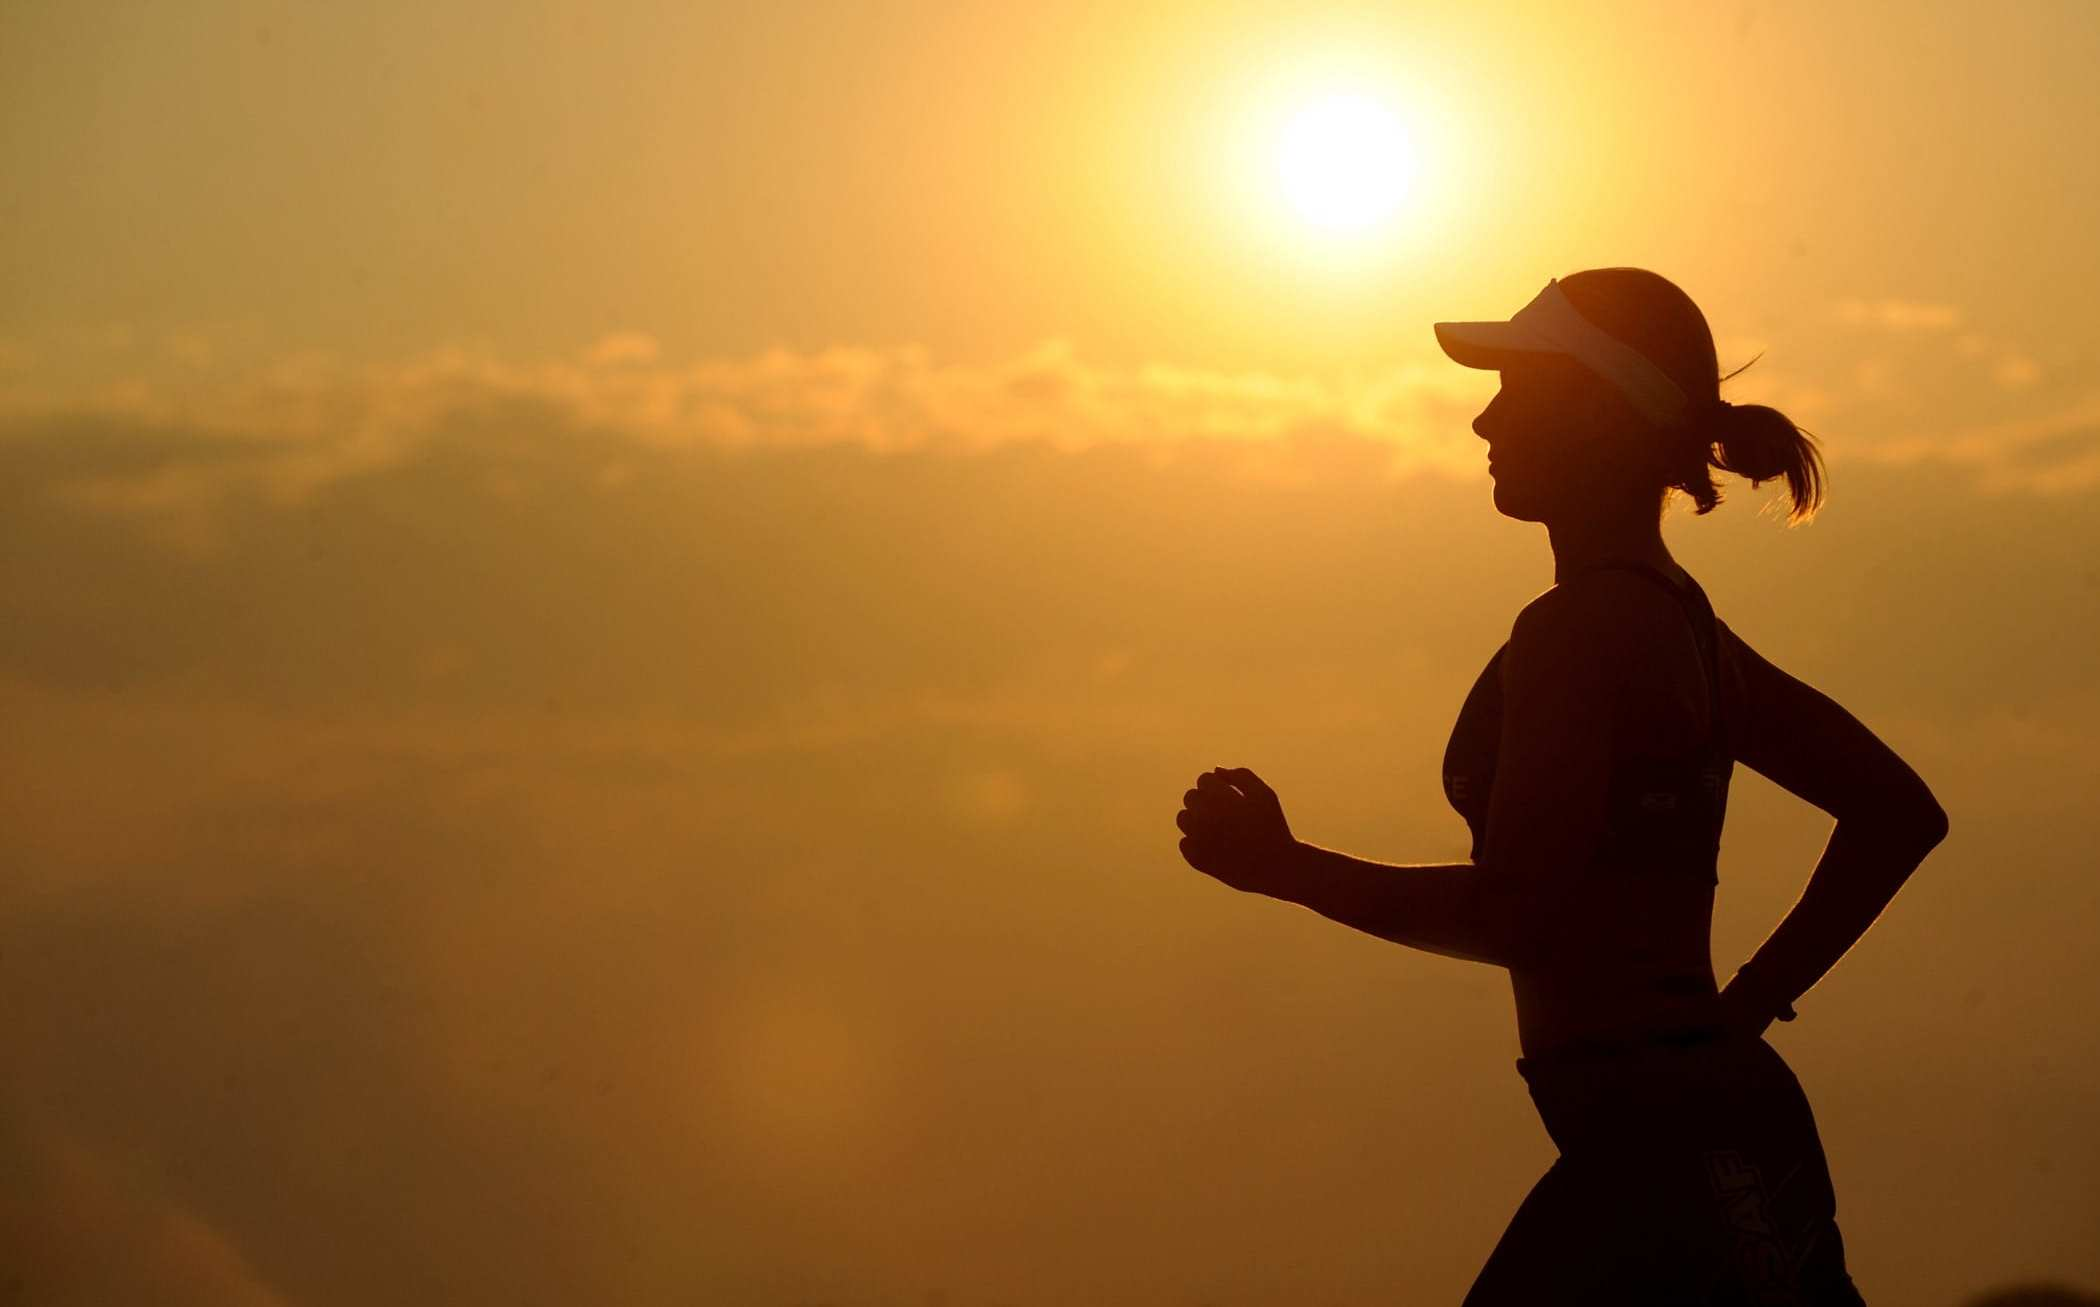 A silhouette of a runner jogging during a sunrise. Distance runners, triathletes, professional cyclists and other endurance athletes use CBD because it helps them perform better and longer.